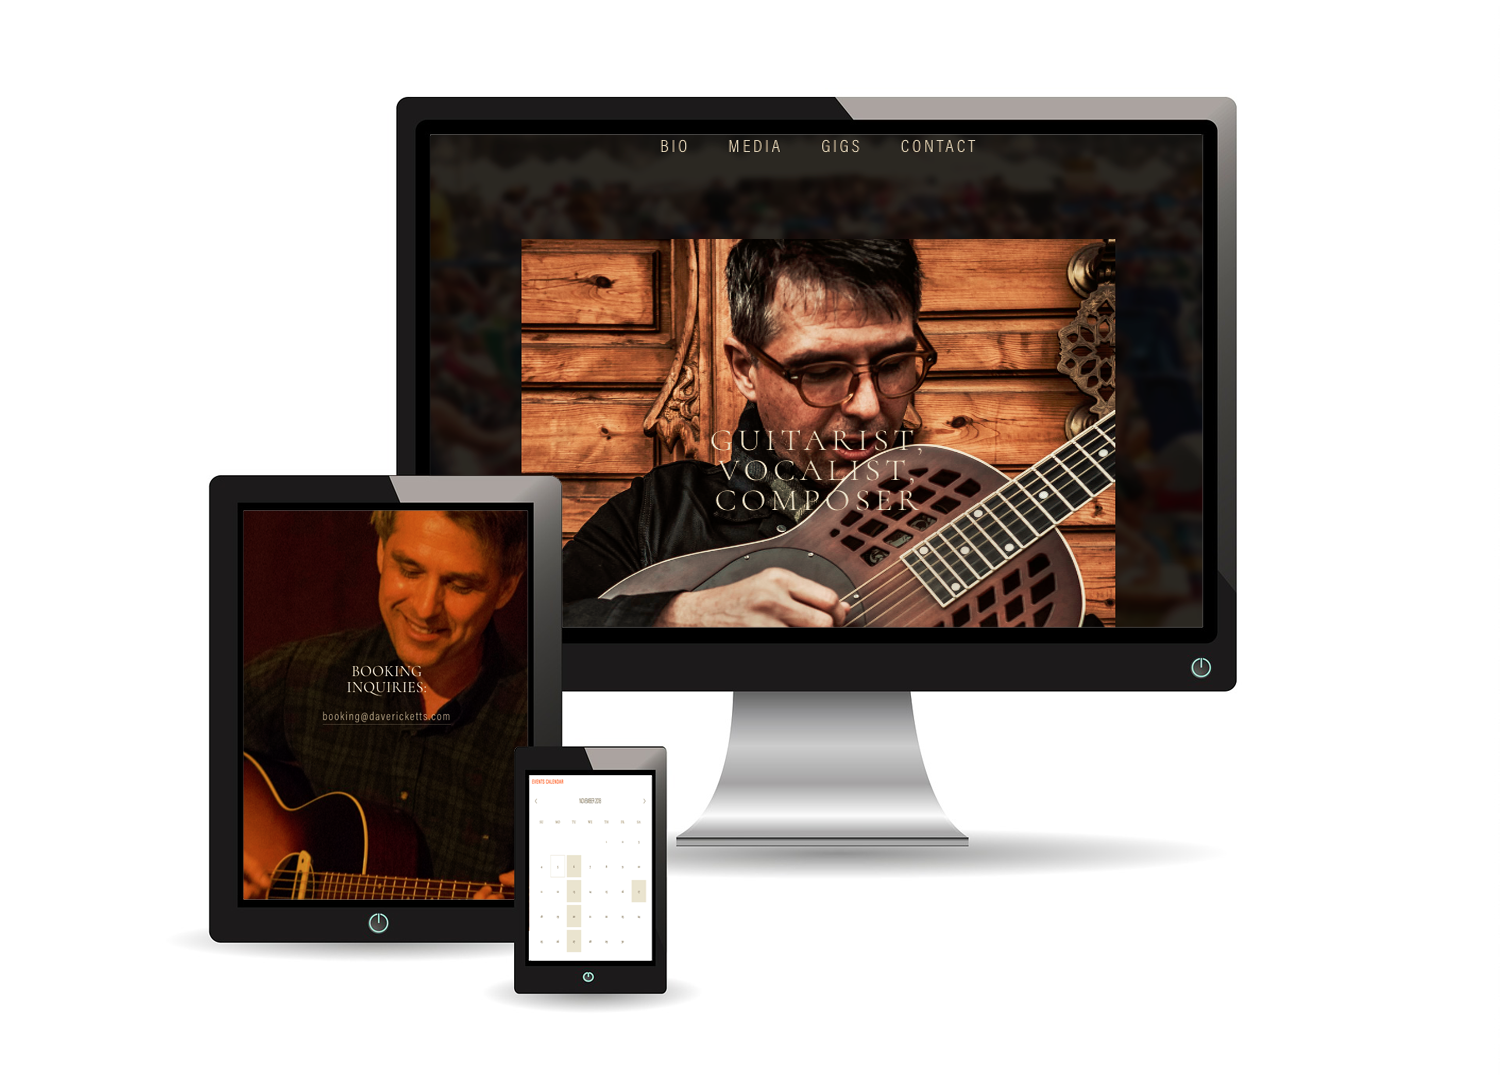 DAVE RICKETTS | Musician Website - San Francisco based musician, Dave Ricketts, wanted to establish his web presence. He needed a website to promote his music and his guitar lessons. Branded social media profiles were developed on Facebook, Instagram, YouTube, and Twitter, then connected to the site. On the Squarespace platform, we provided a photo-rich design, wrote copy, added videos, and optimized pages for search. In addition, MailChimp was integrated to capture email subscribers, sound tracks were embedded, and a Bands in Town calendar was integrated.